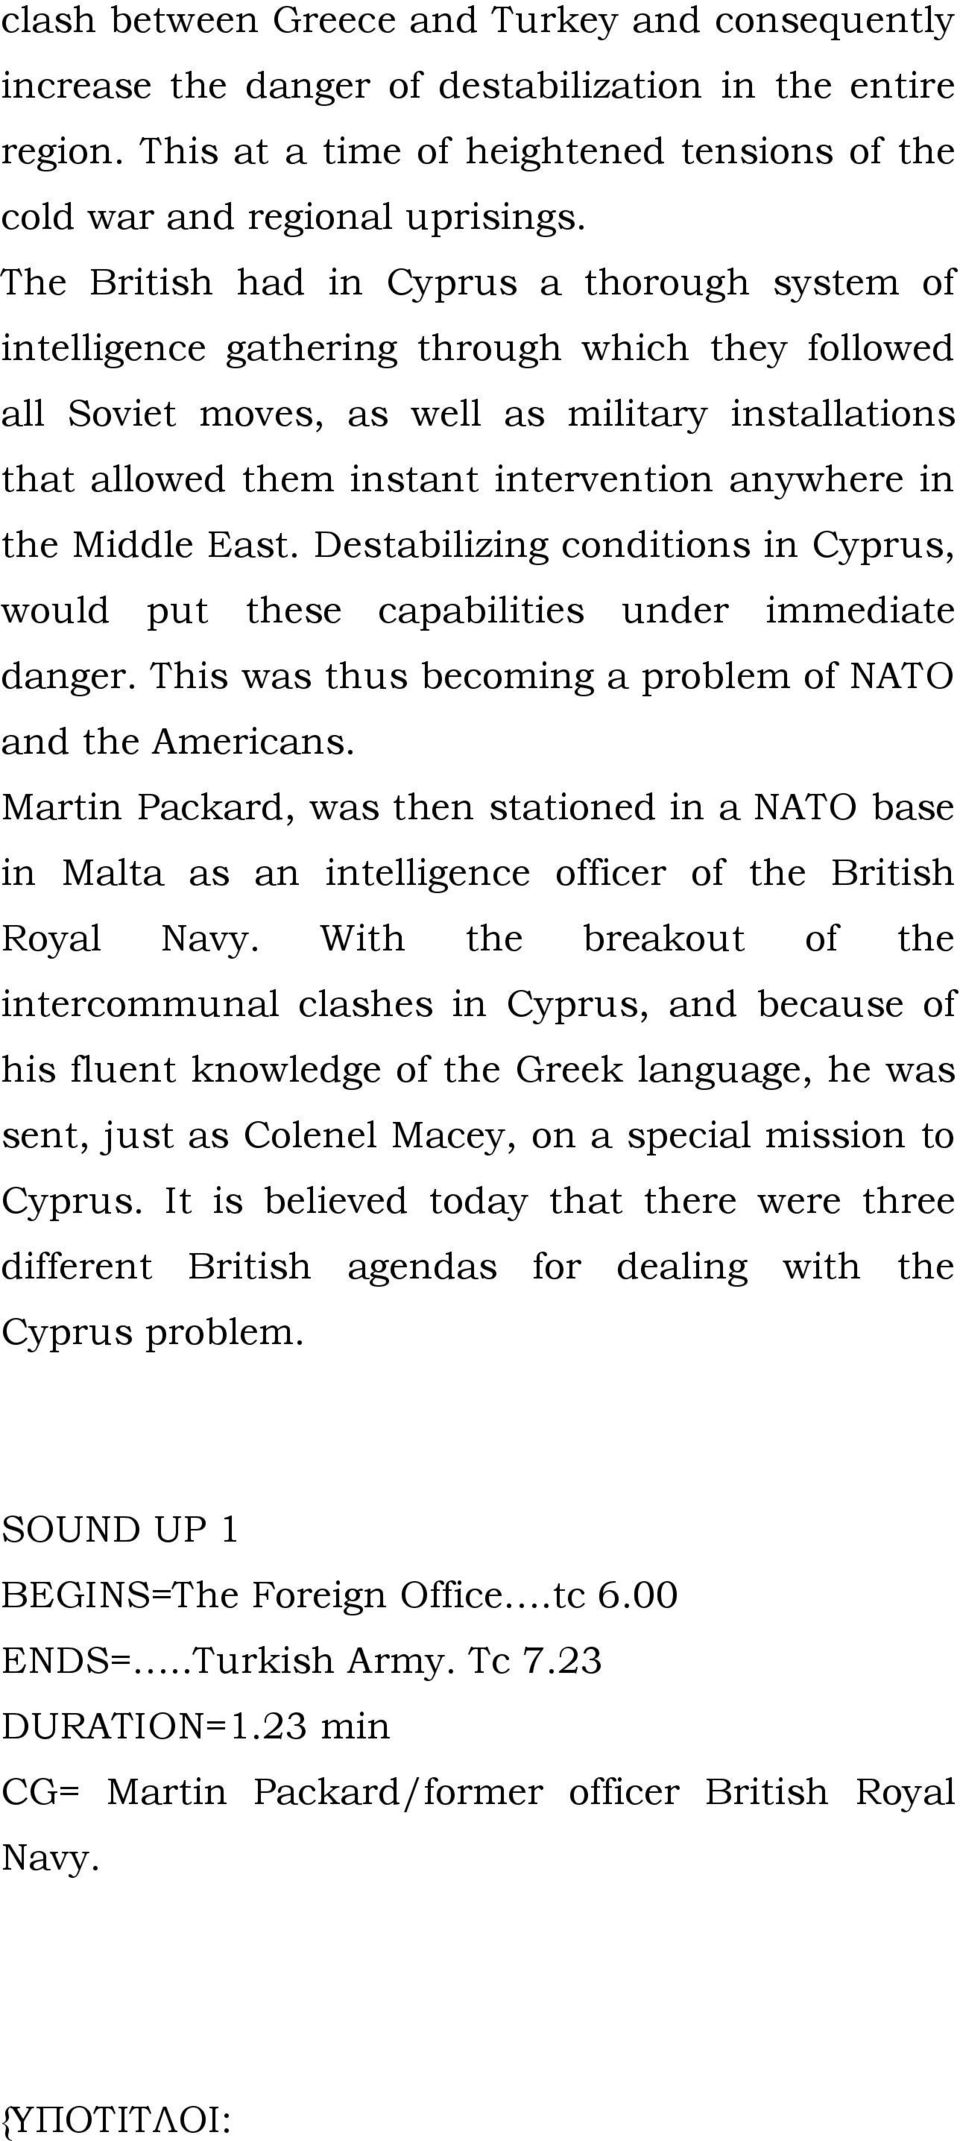 in the Middle East. Destabilizing conditions in Cyprus, would put these capabilities under immediate danger. This was thus becoming a problem of NATO and the Americans.